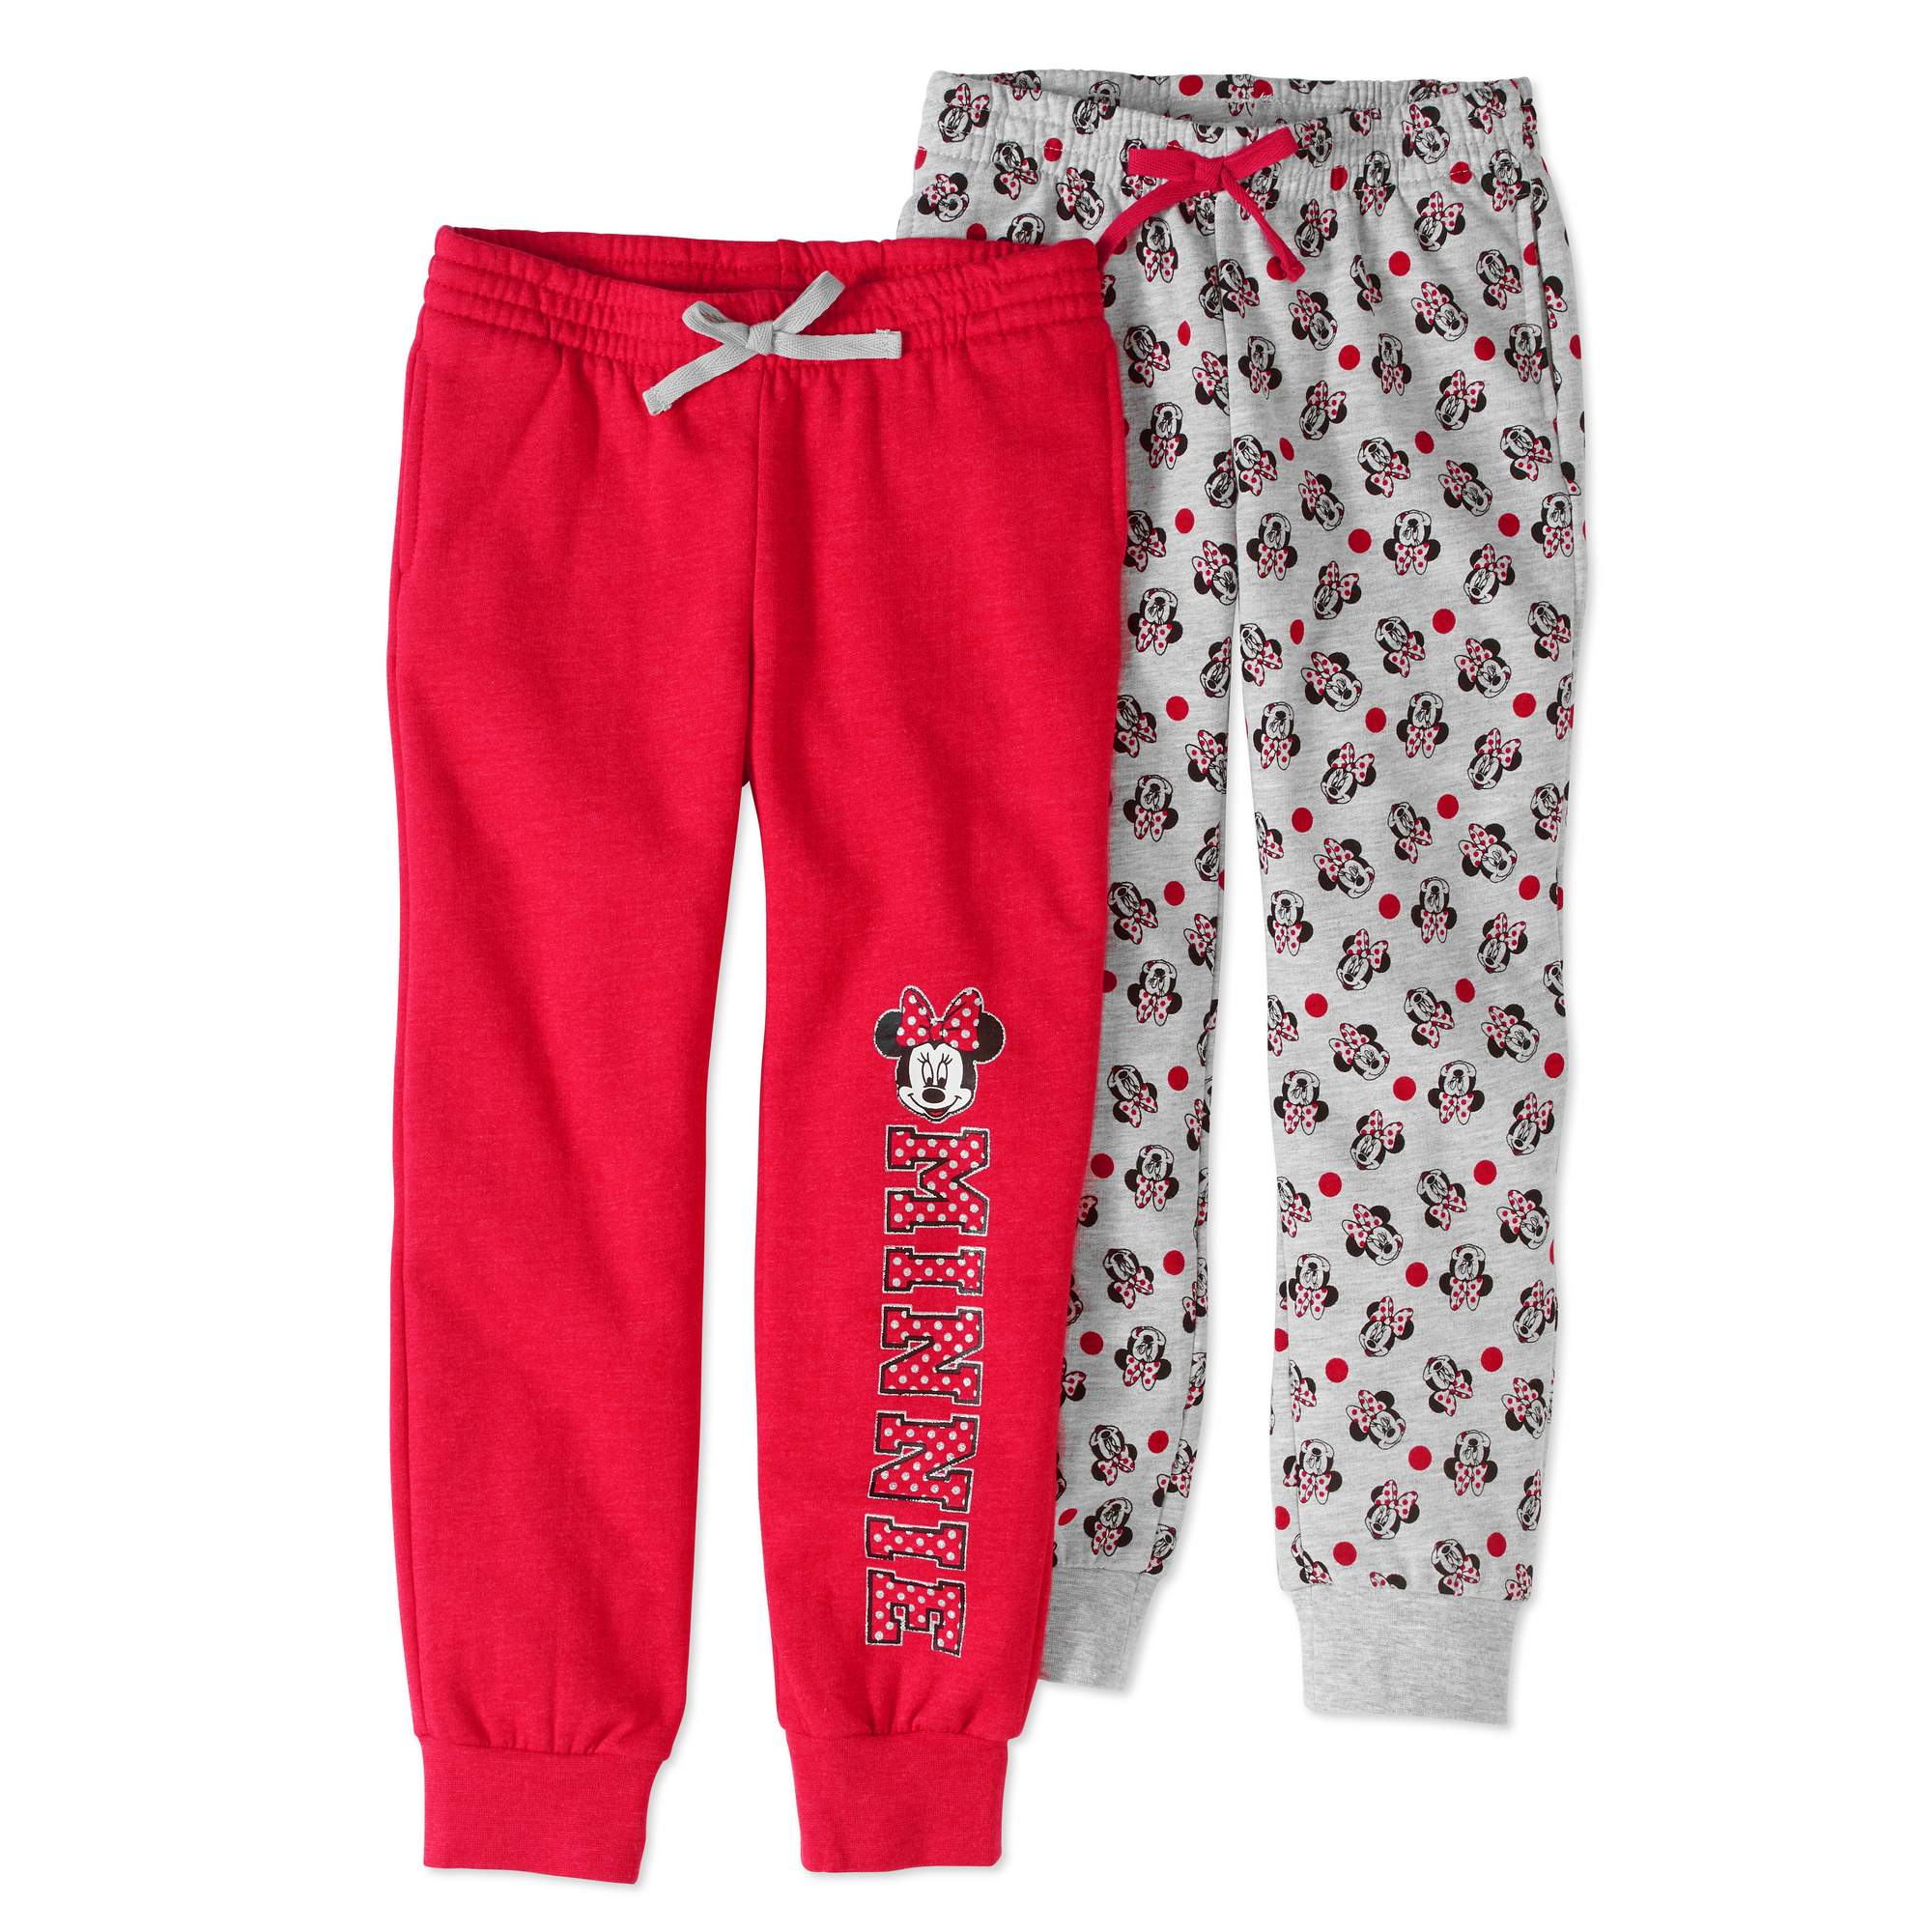 Minnie Mouse Girls' Jogger Pants 2-Pack Set